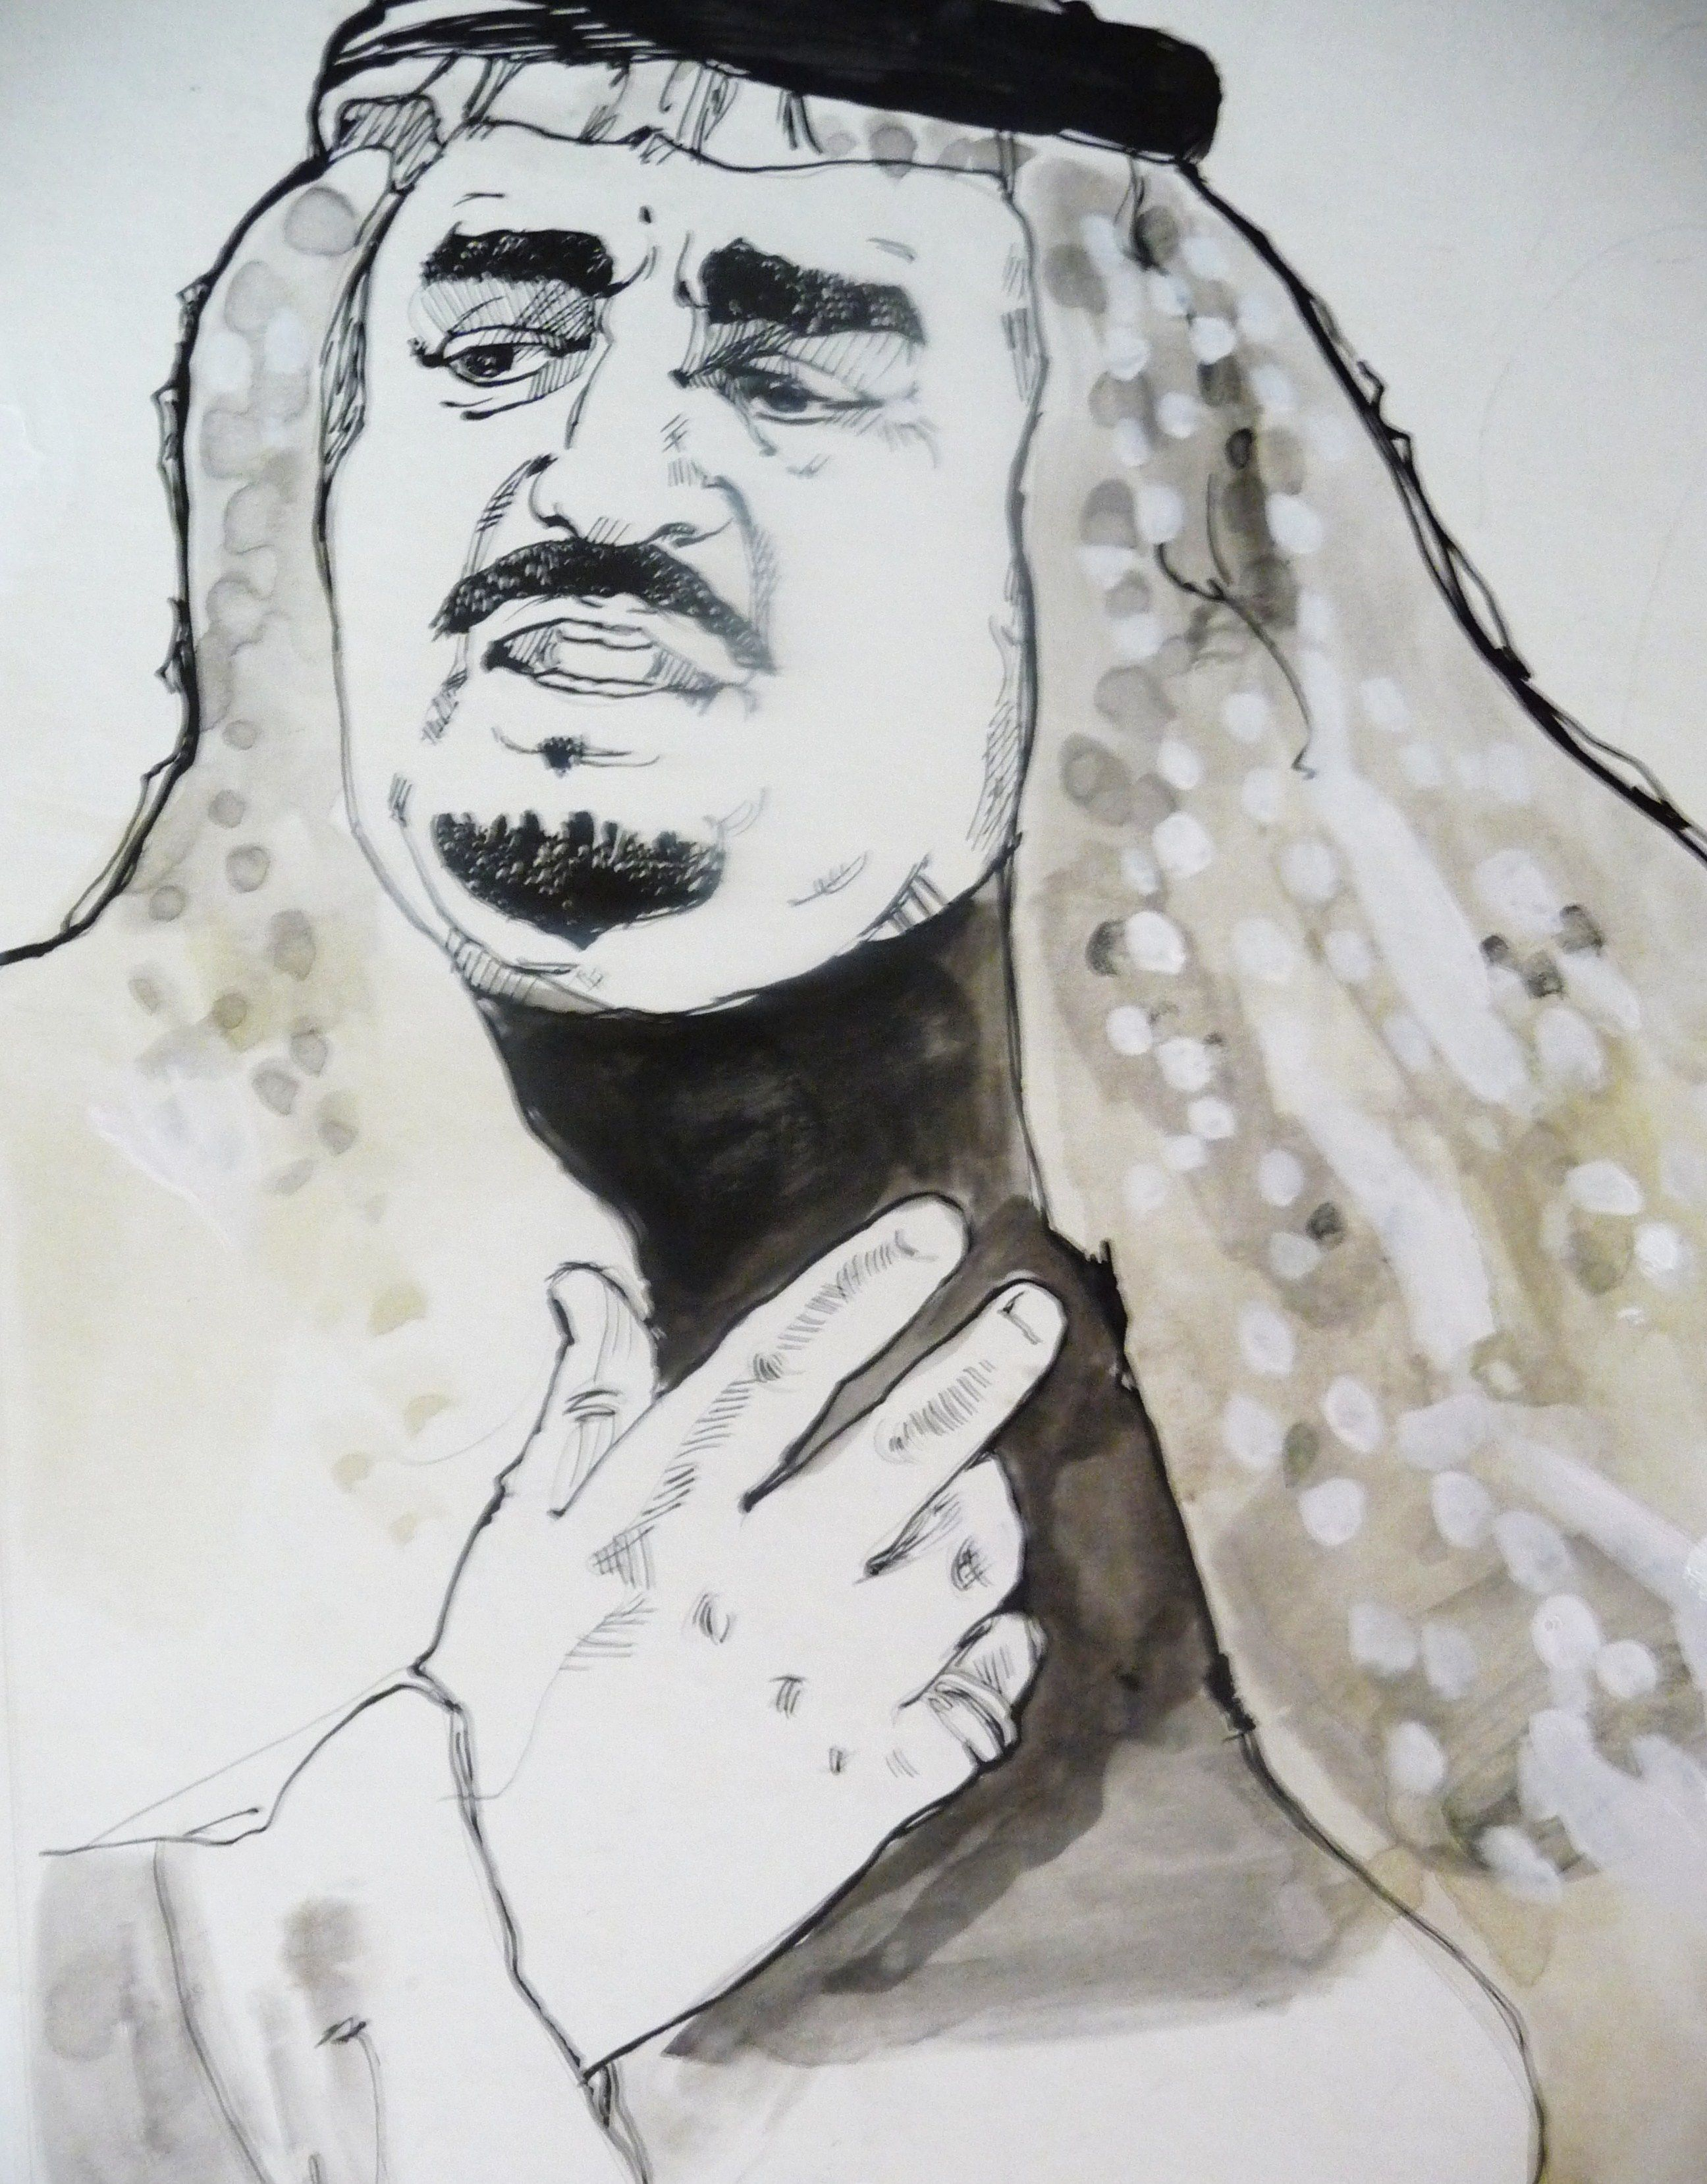 Arab Prince. Ink and guache on hotpress illustration board. Copyright 2012 by S. K. Cole, all rights reserved.